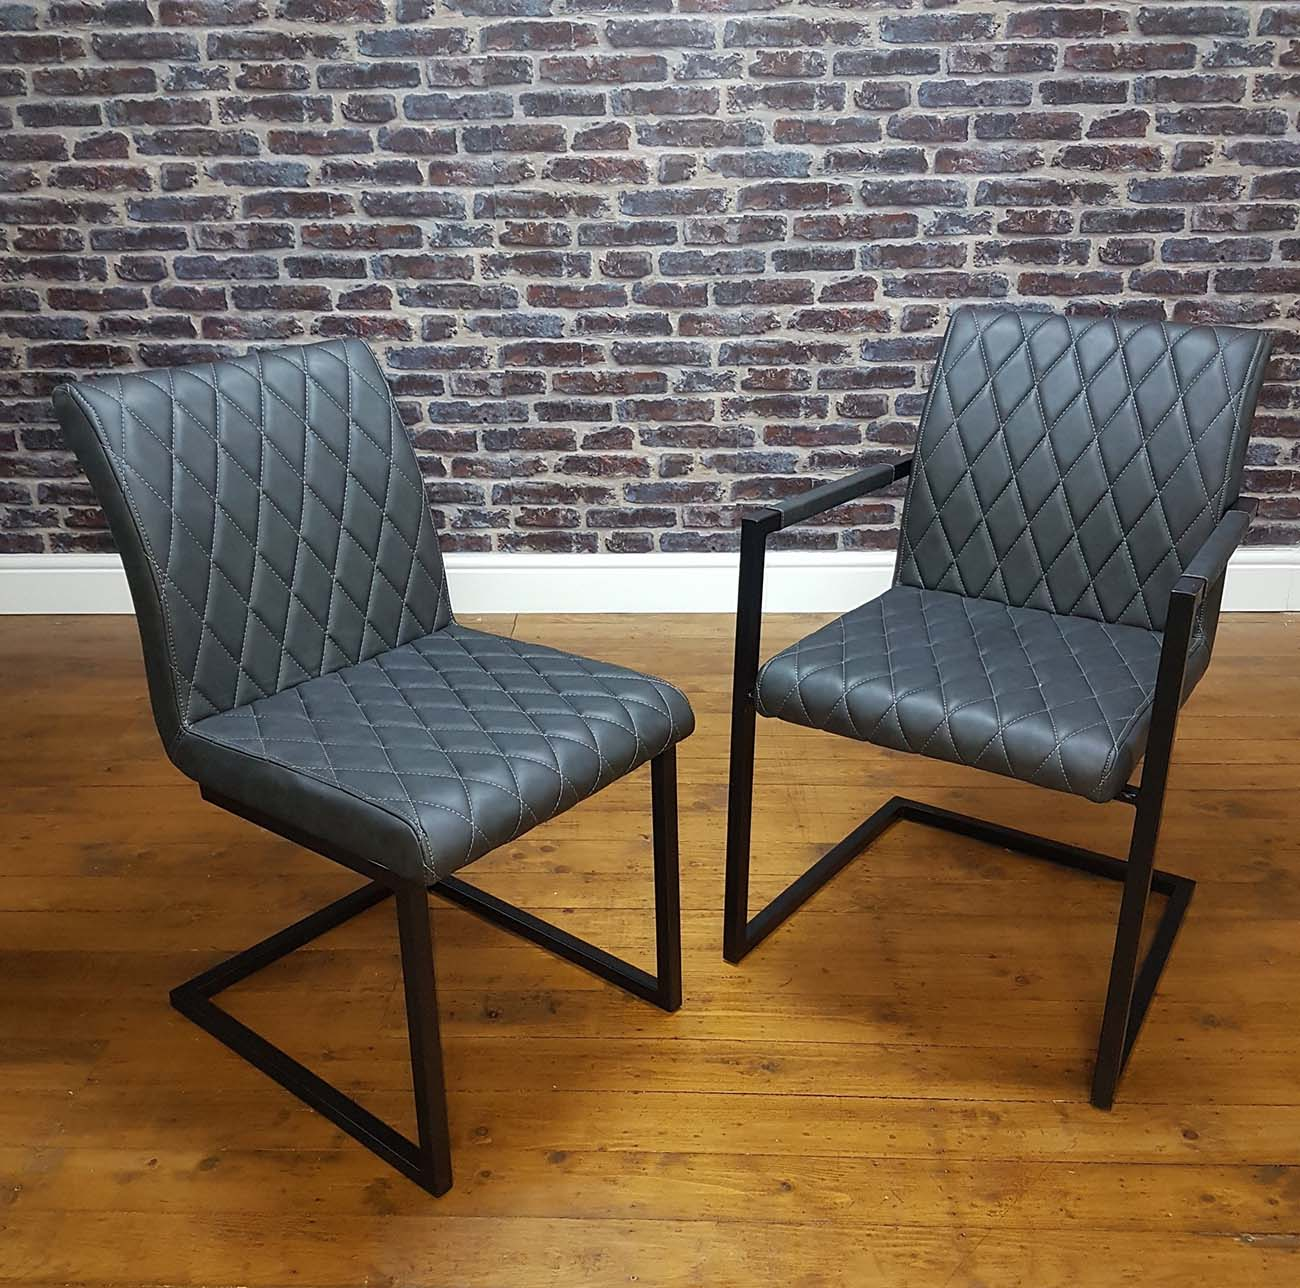 Modanuvo Vintage Grey Leather Metal Cantilever Industrial Dining Chair